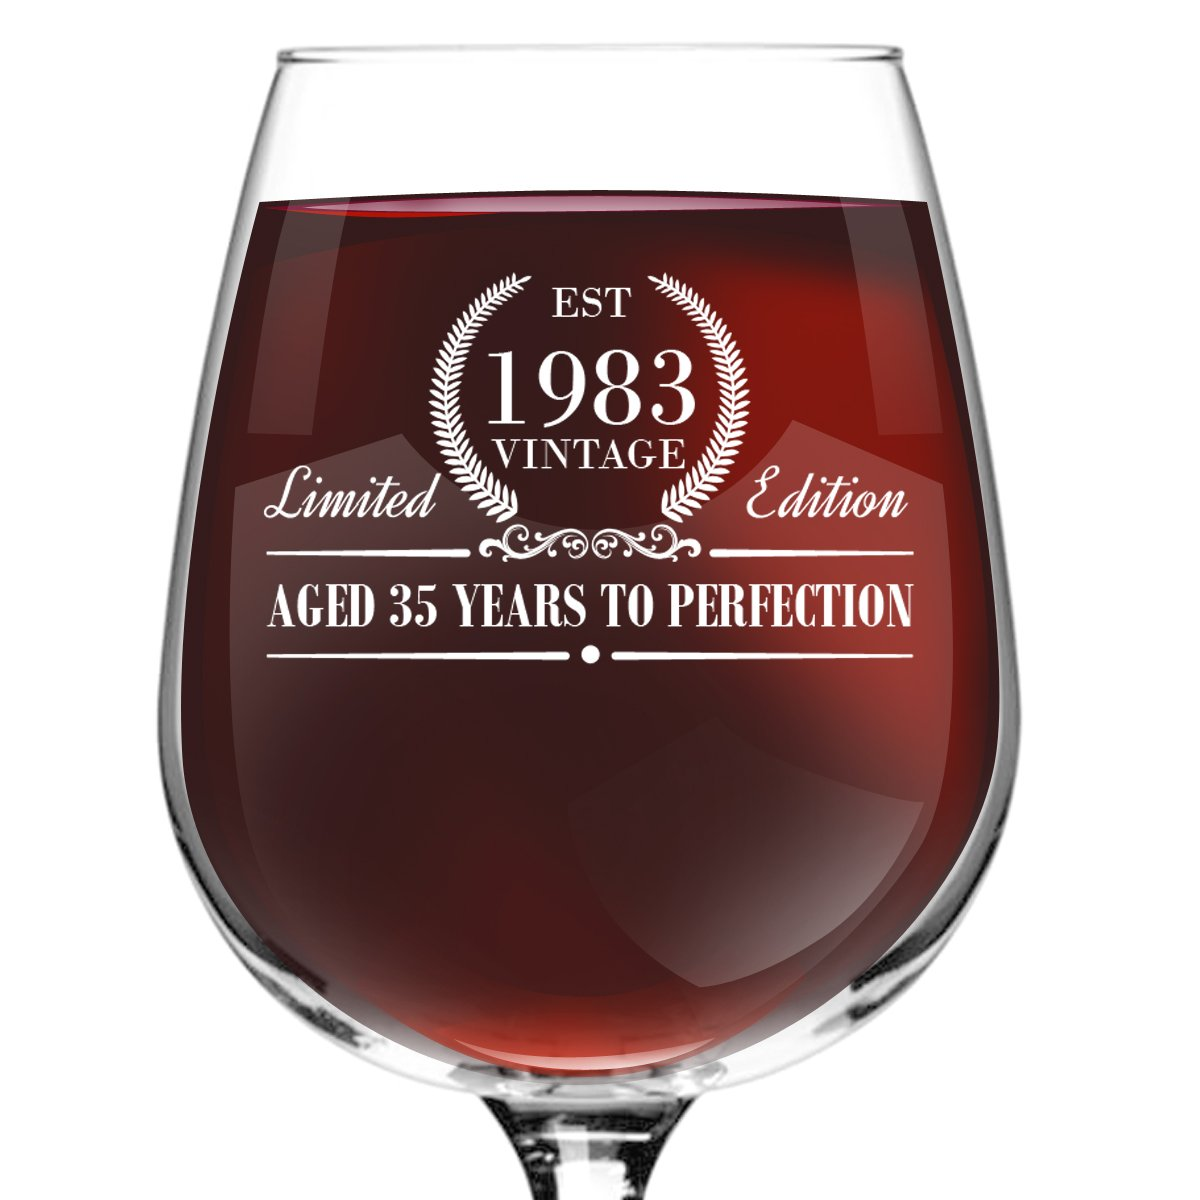 1983 Vintage Edition Birthday Wine Glass for Men and Women (35th Anniversary) 12 oz, Elegant Happy Birthday Wine Glasses for Red or White Wine | Classic Birthday Gift, Reunion Gift for Him or Her by DU VINO (Image #2)